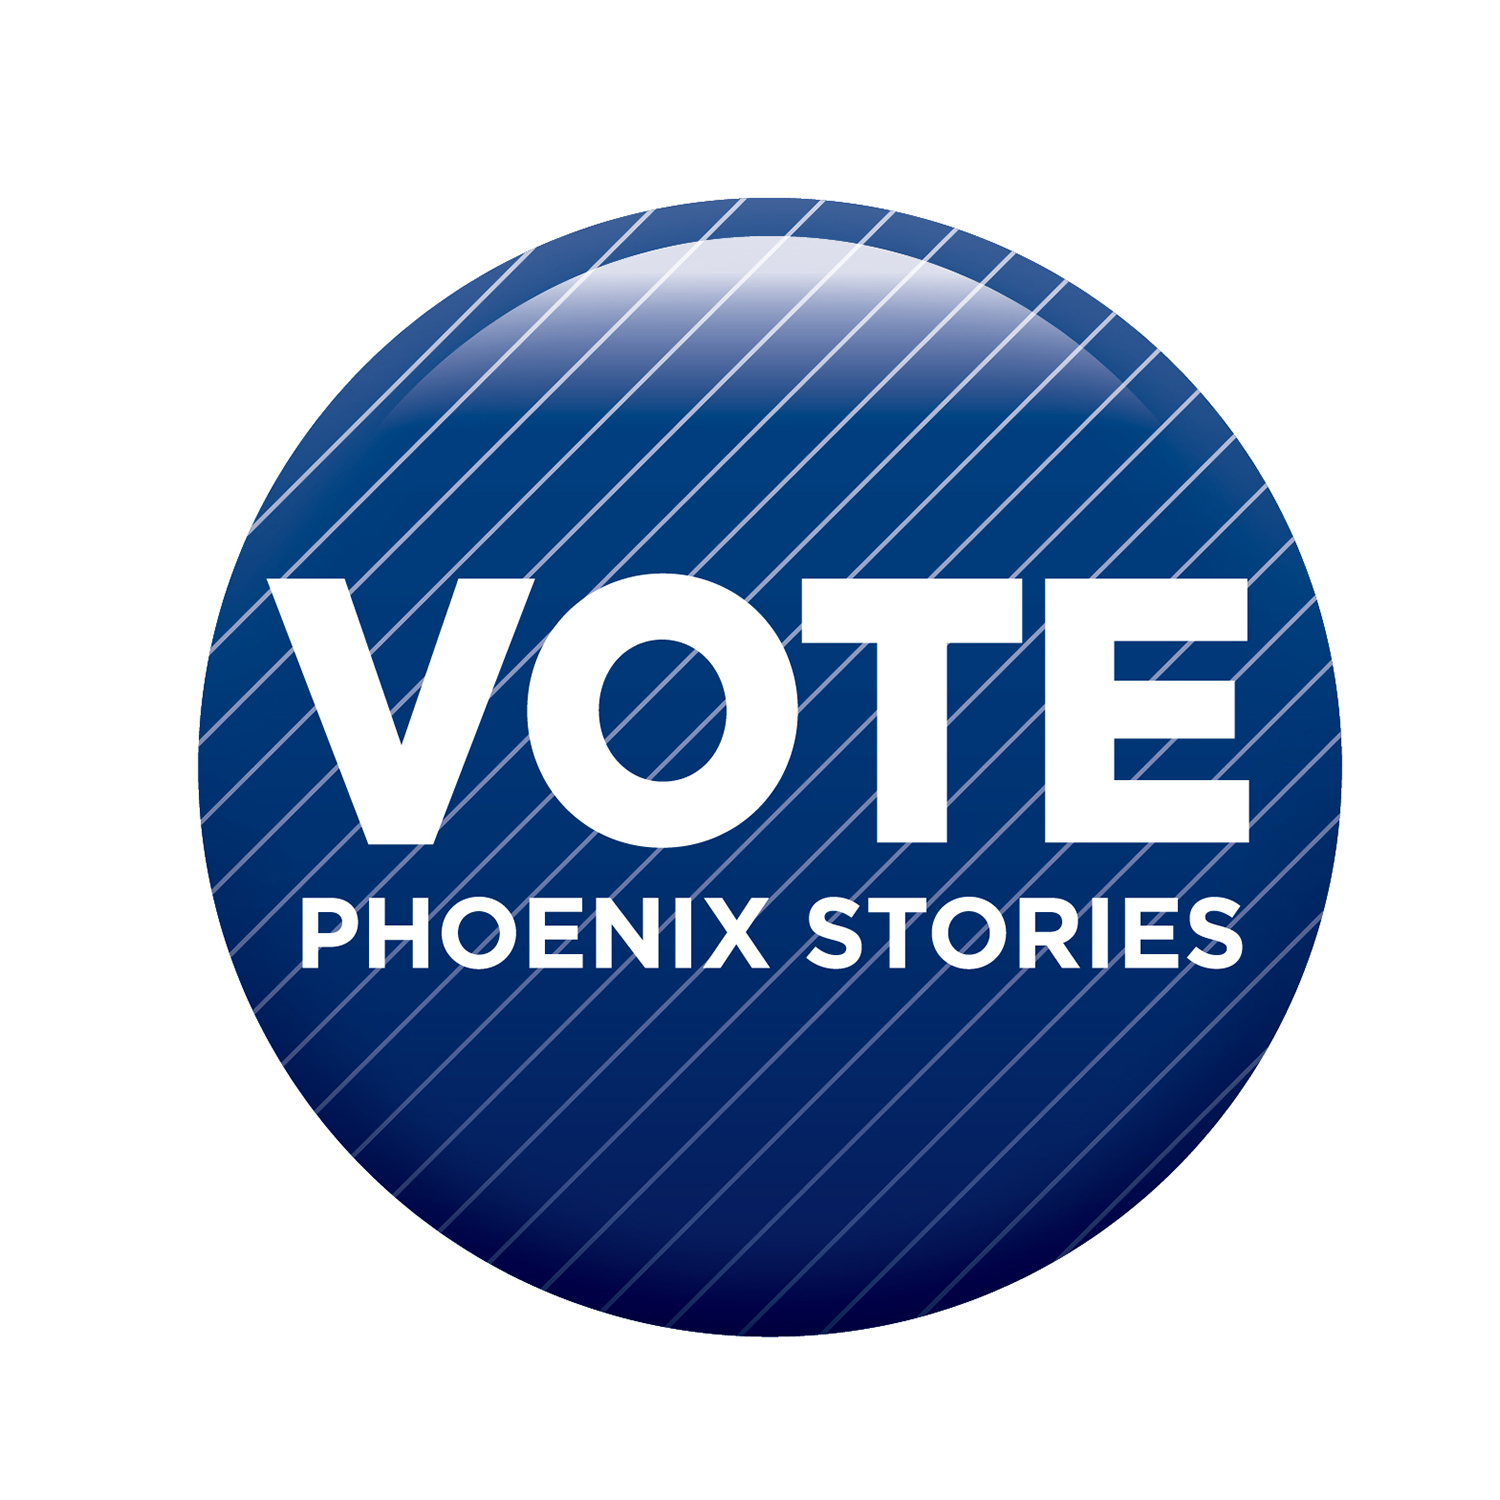 Phoenix Stories VoteButton OTL